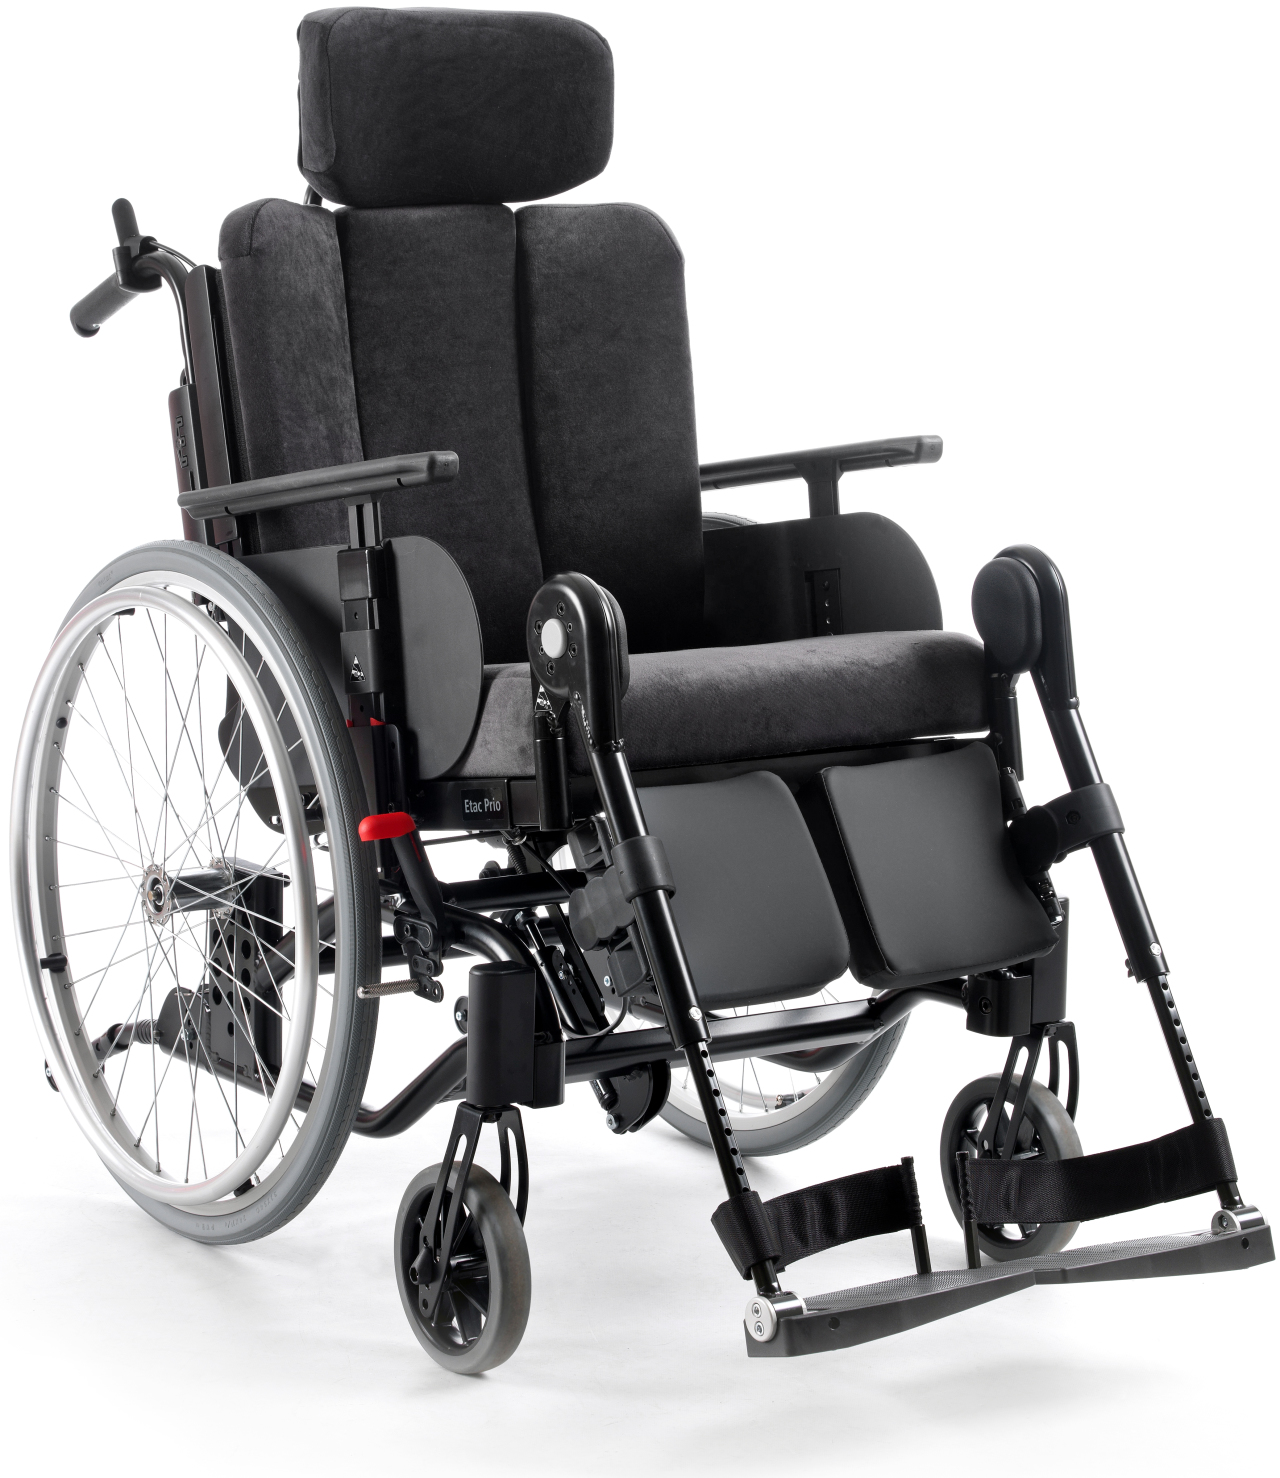 Etac Prio 3D multi-functional wheelchair - Discontinued